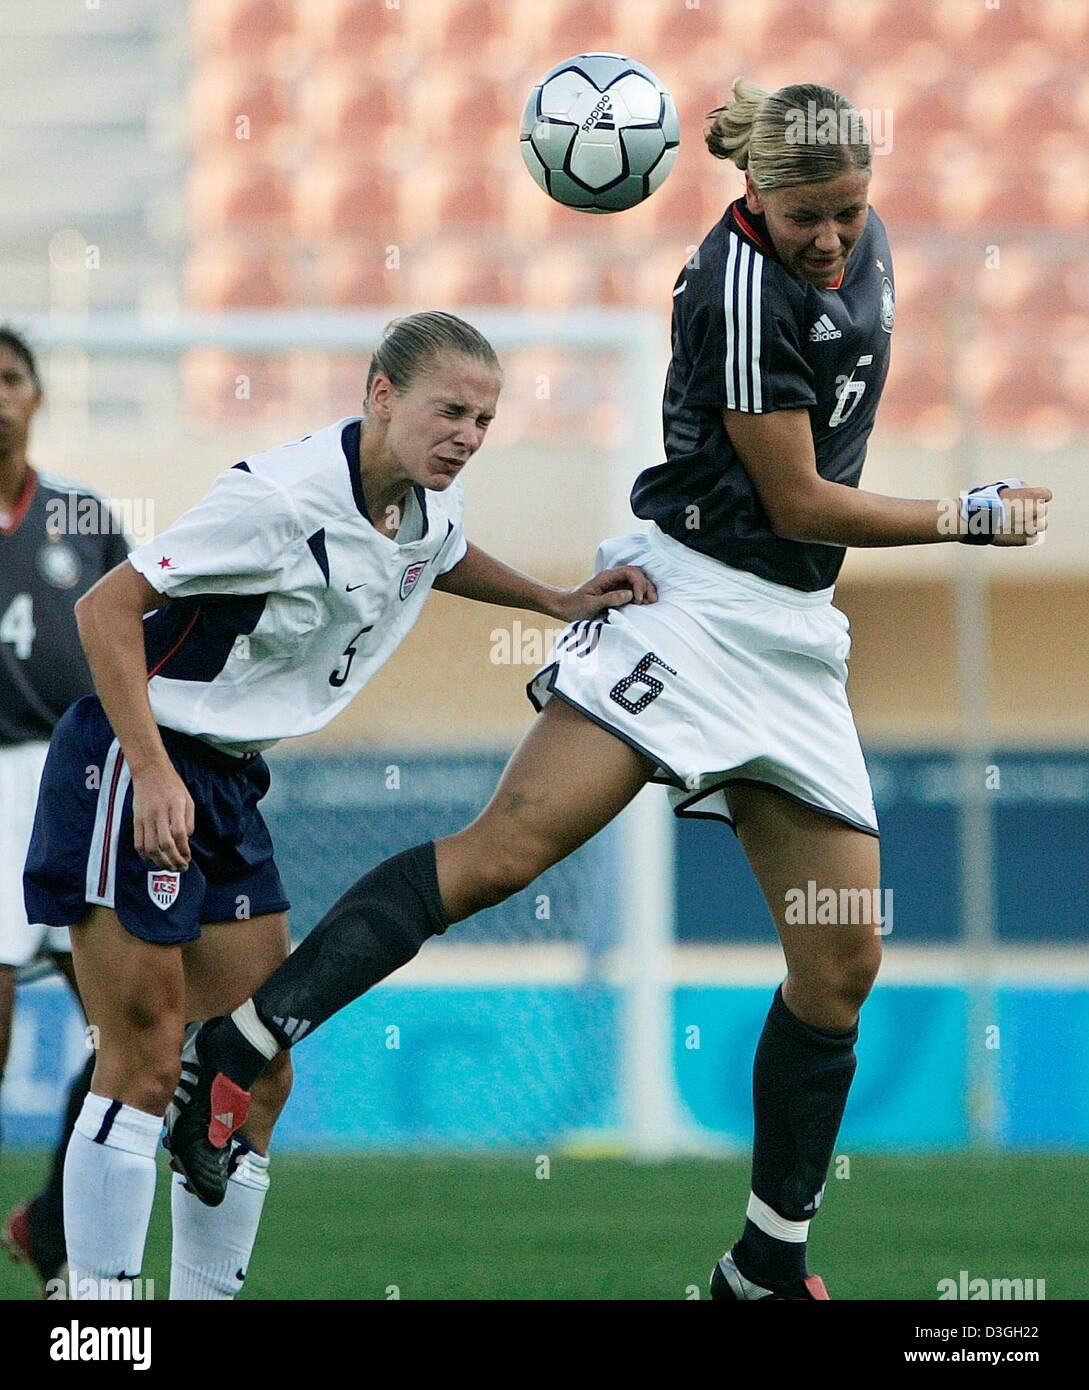 (dpa) - USA soccer player Lindsay Tarpley (L) and her German opponent Viola  Oderbrecht fight for the ball during the Olympic women s soccer tournament  ... a320cdf195